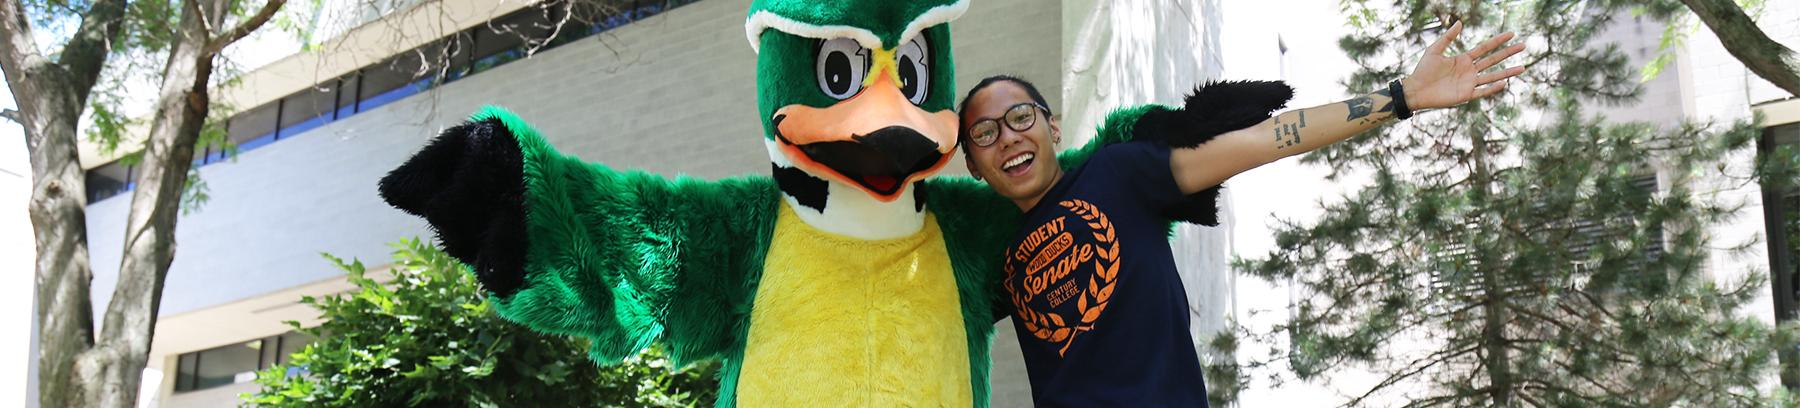 Student standing with Woody the Wood Duck, both with their arms out wide.